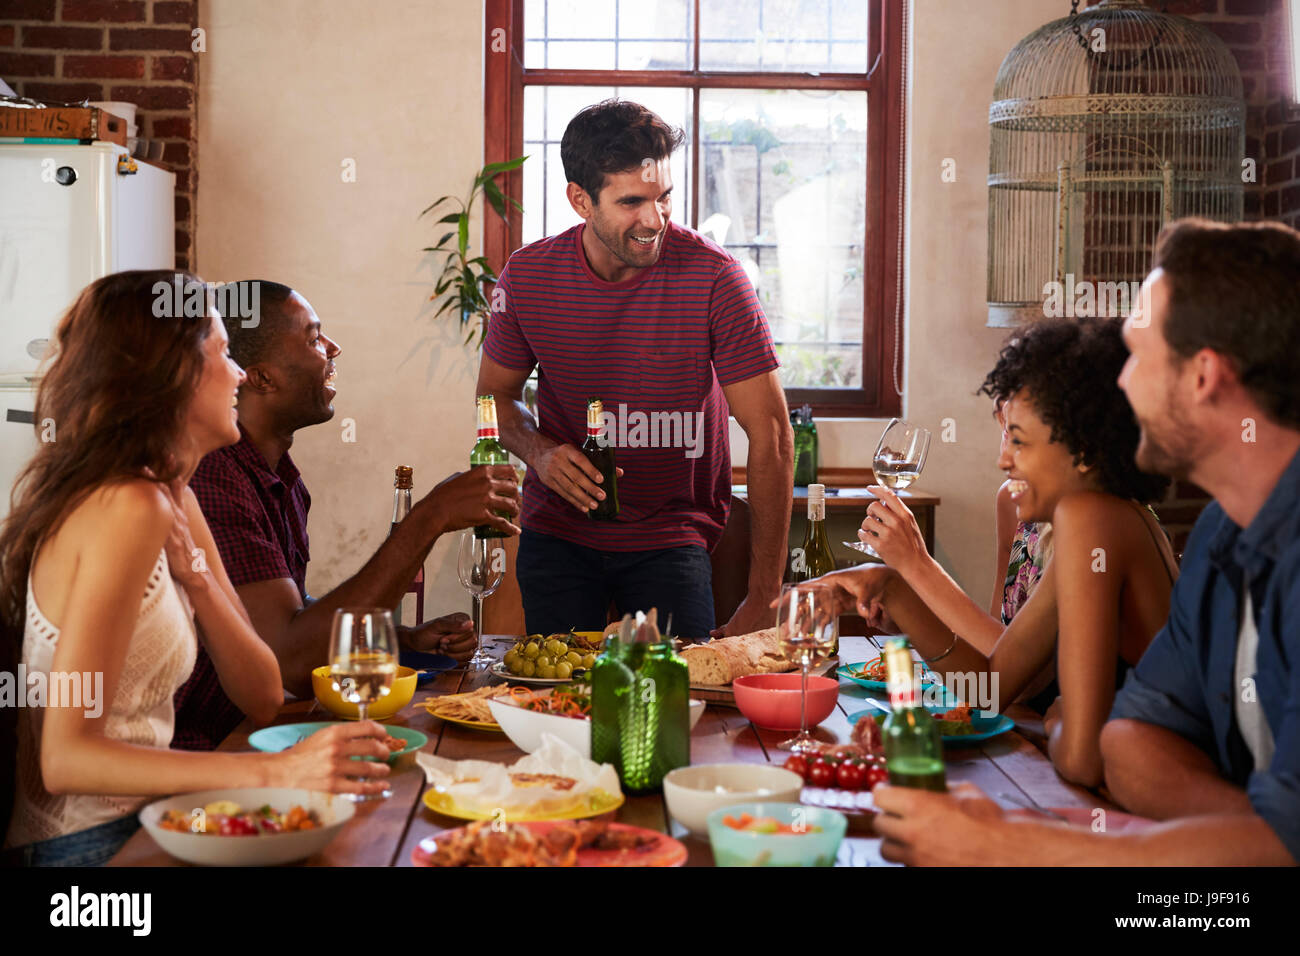 Friends with drinks at the table during a dinner party - Stock Image